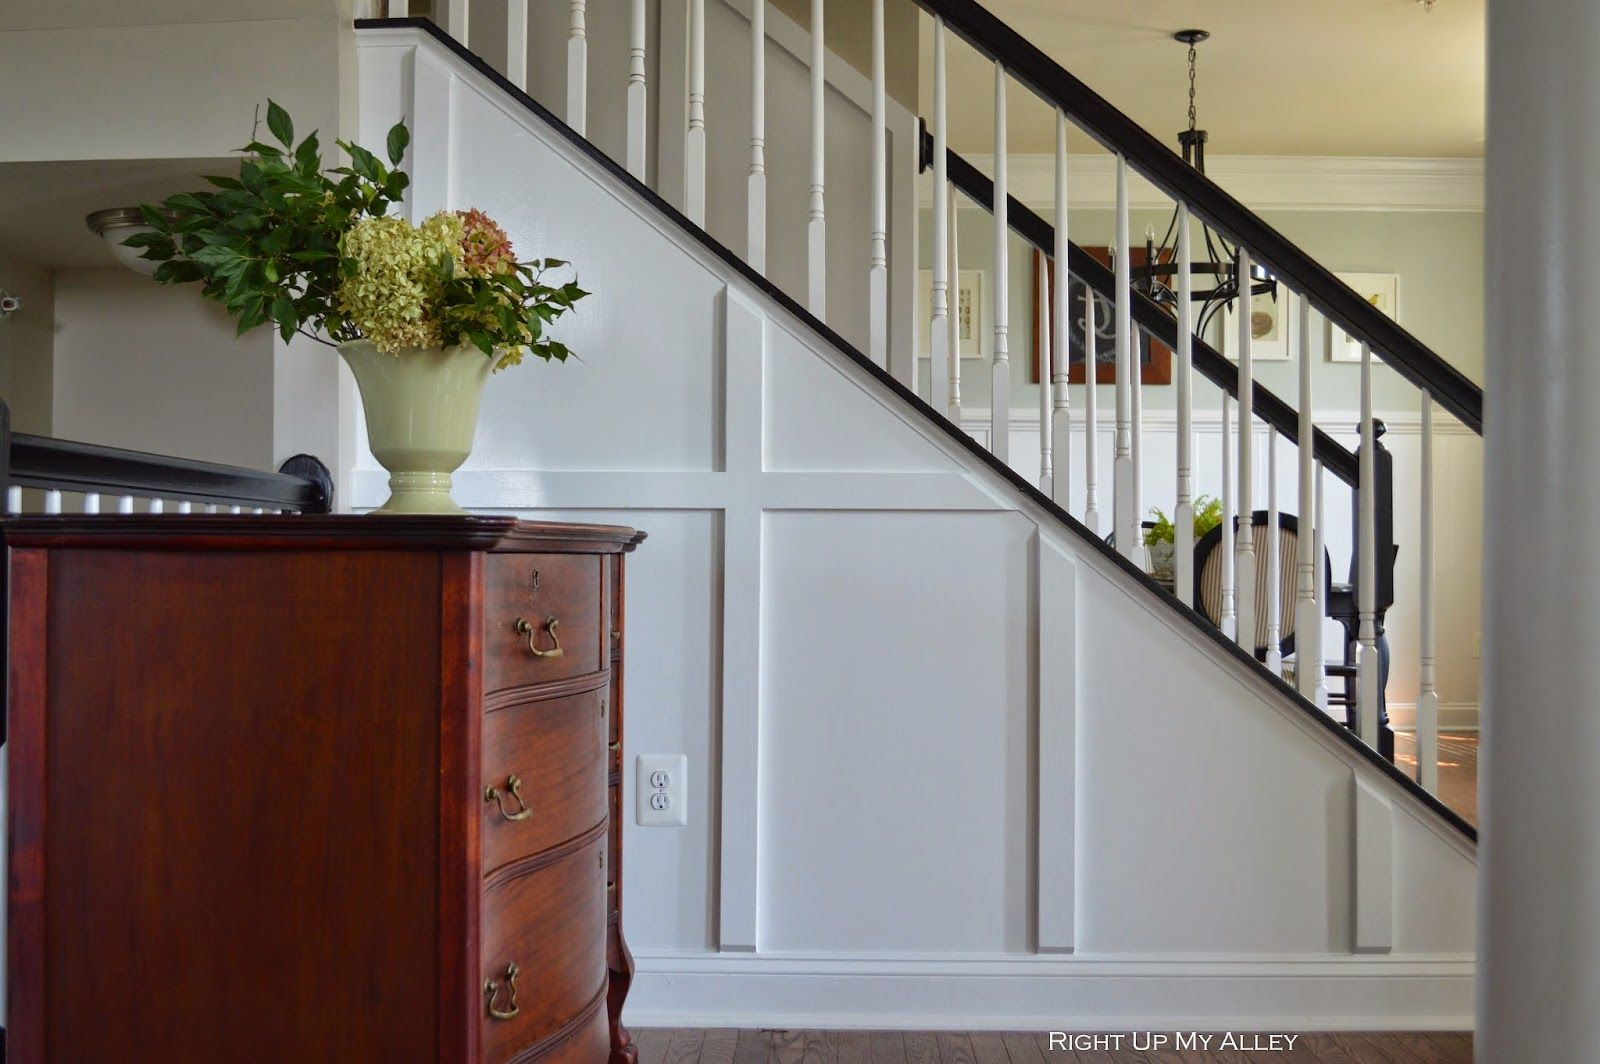 Trimmed out staircase - beautiful!